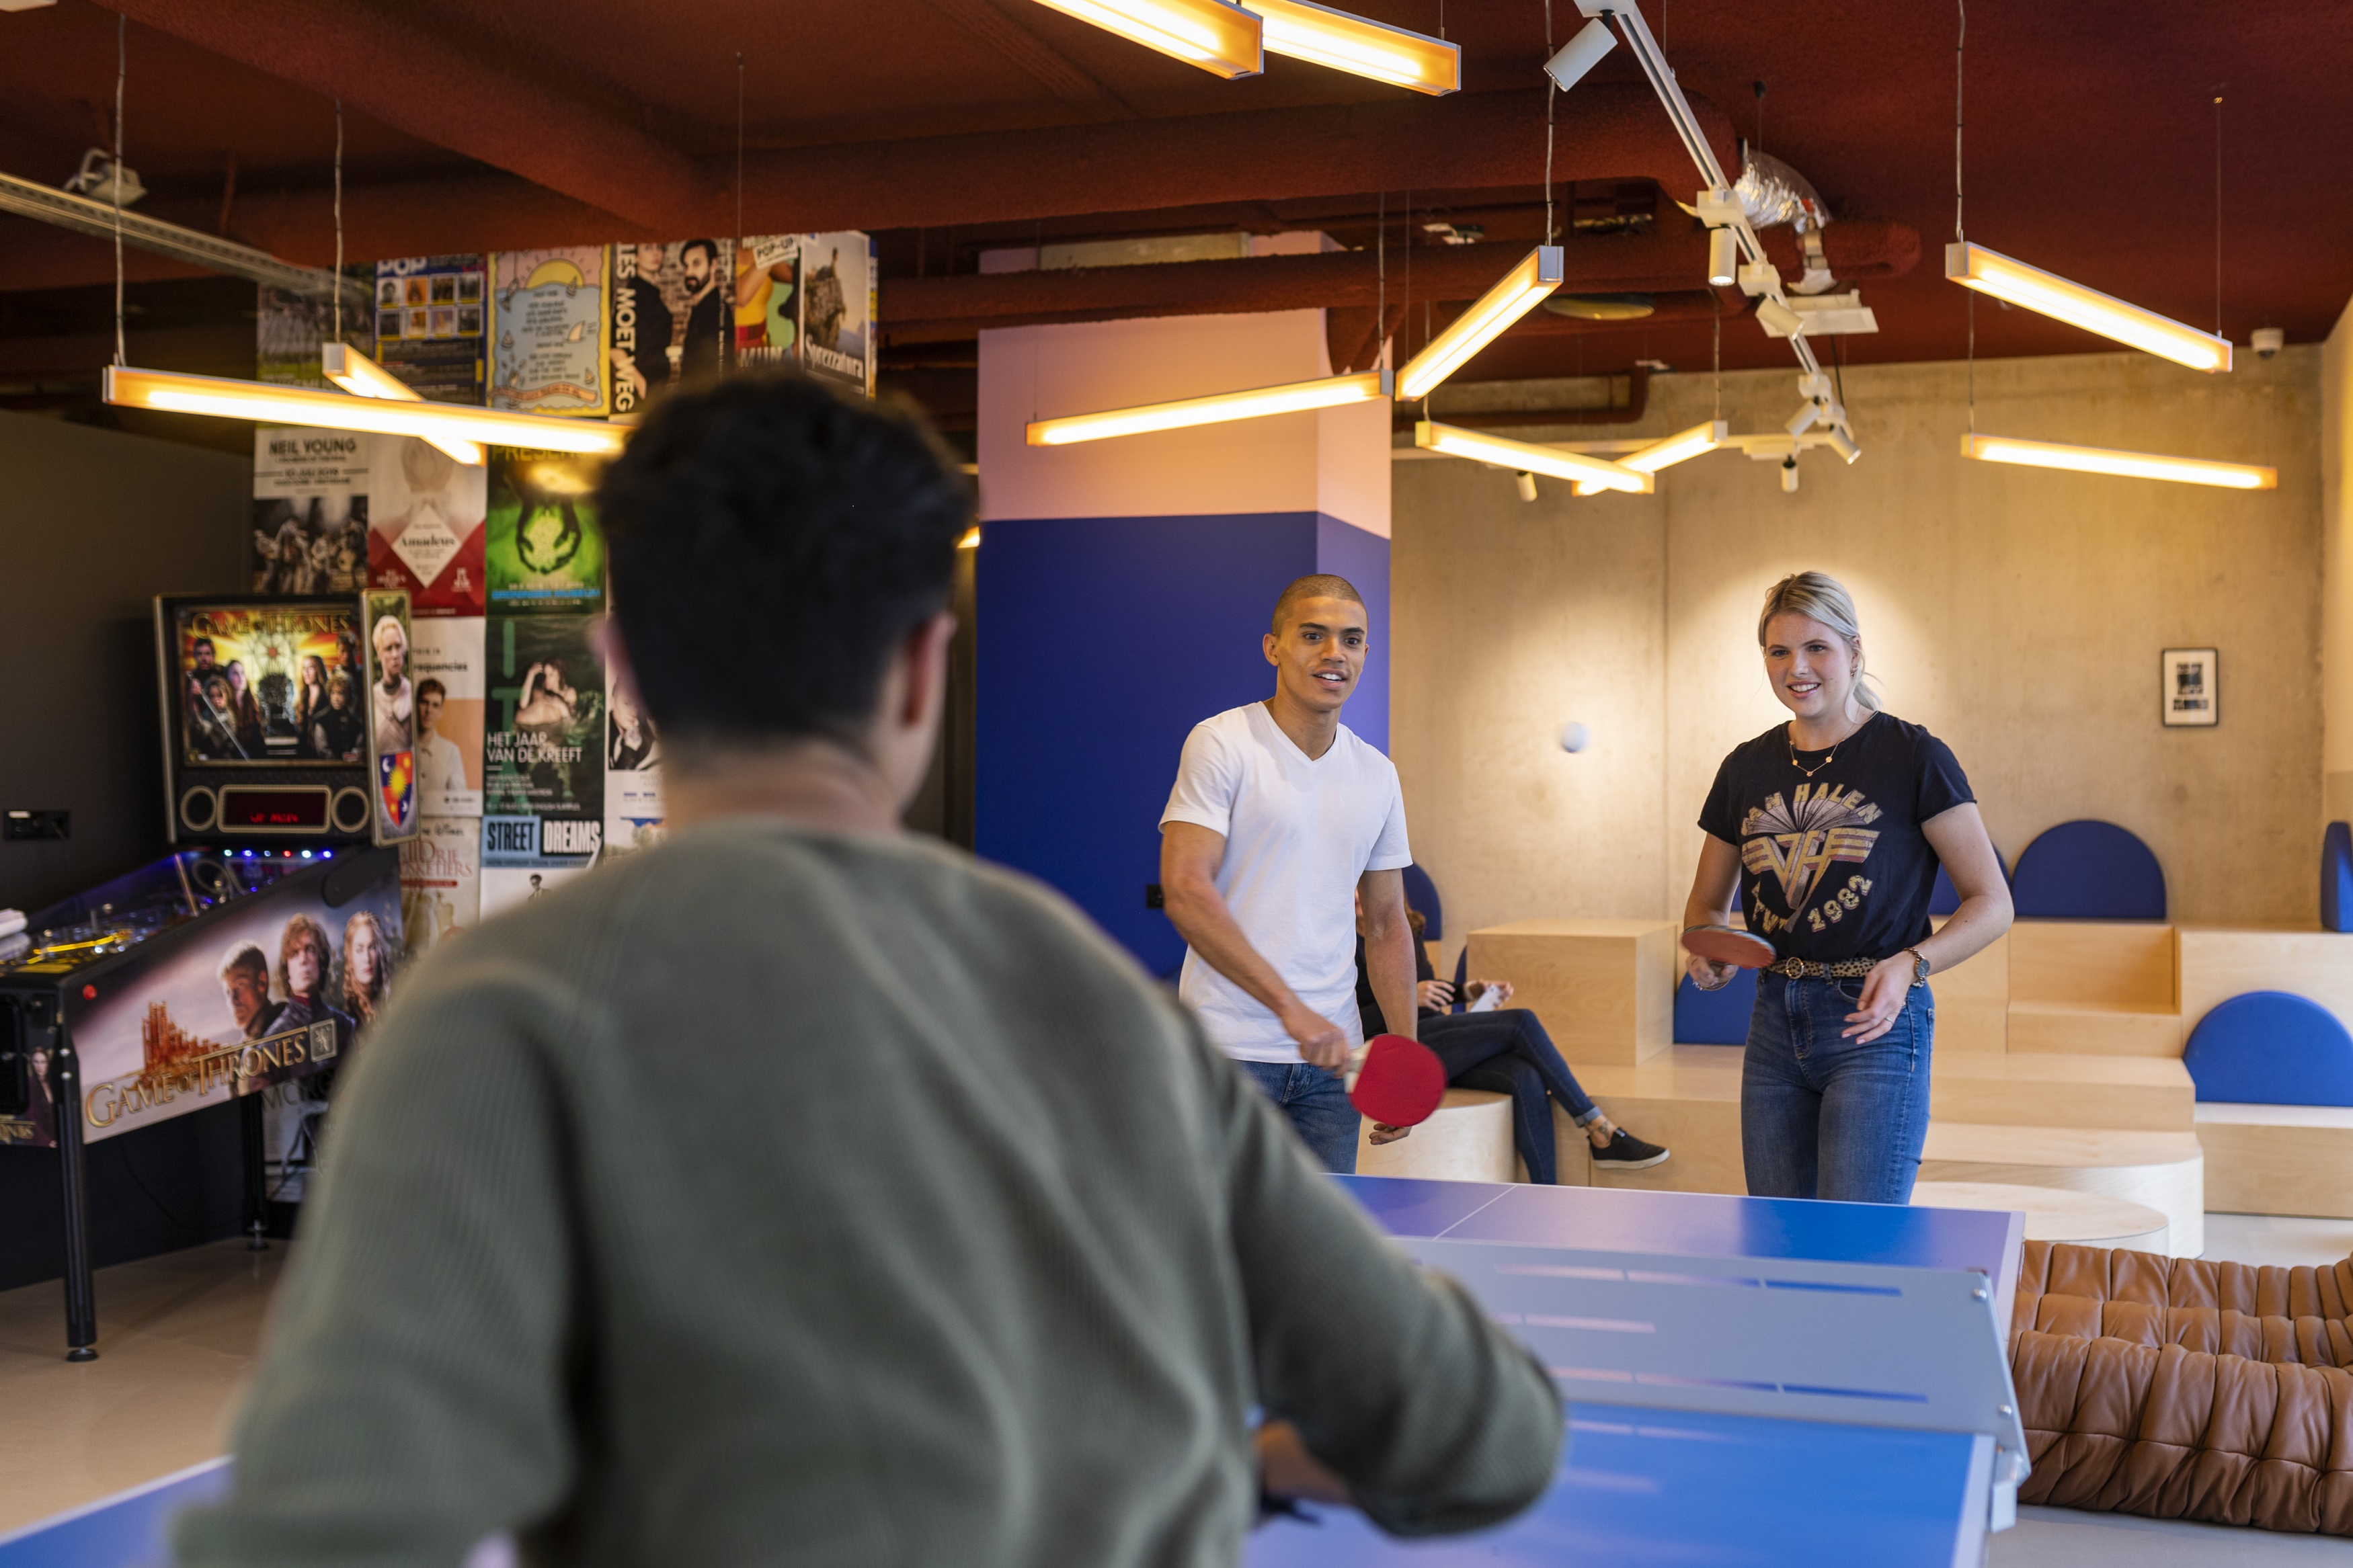 OurDomain Amsterdam Diemen Game Room with residents playing table tennis